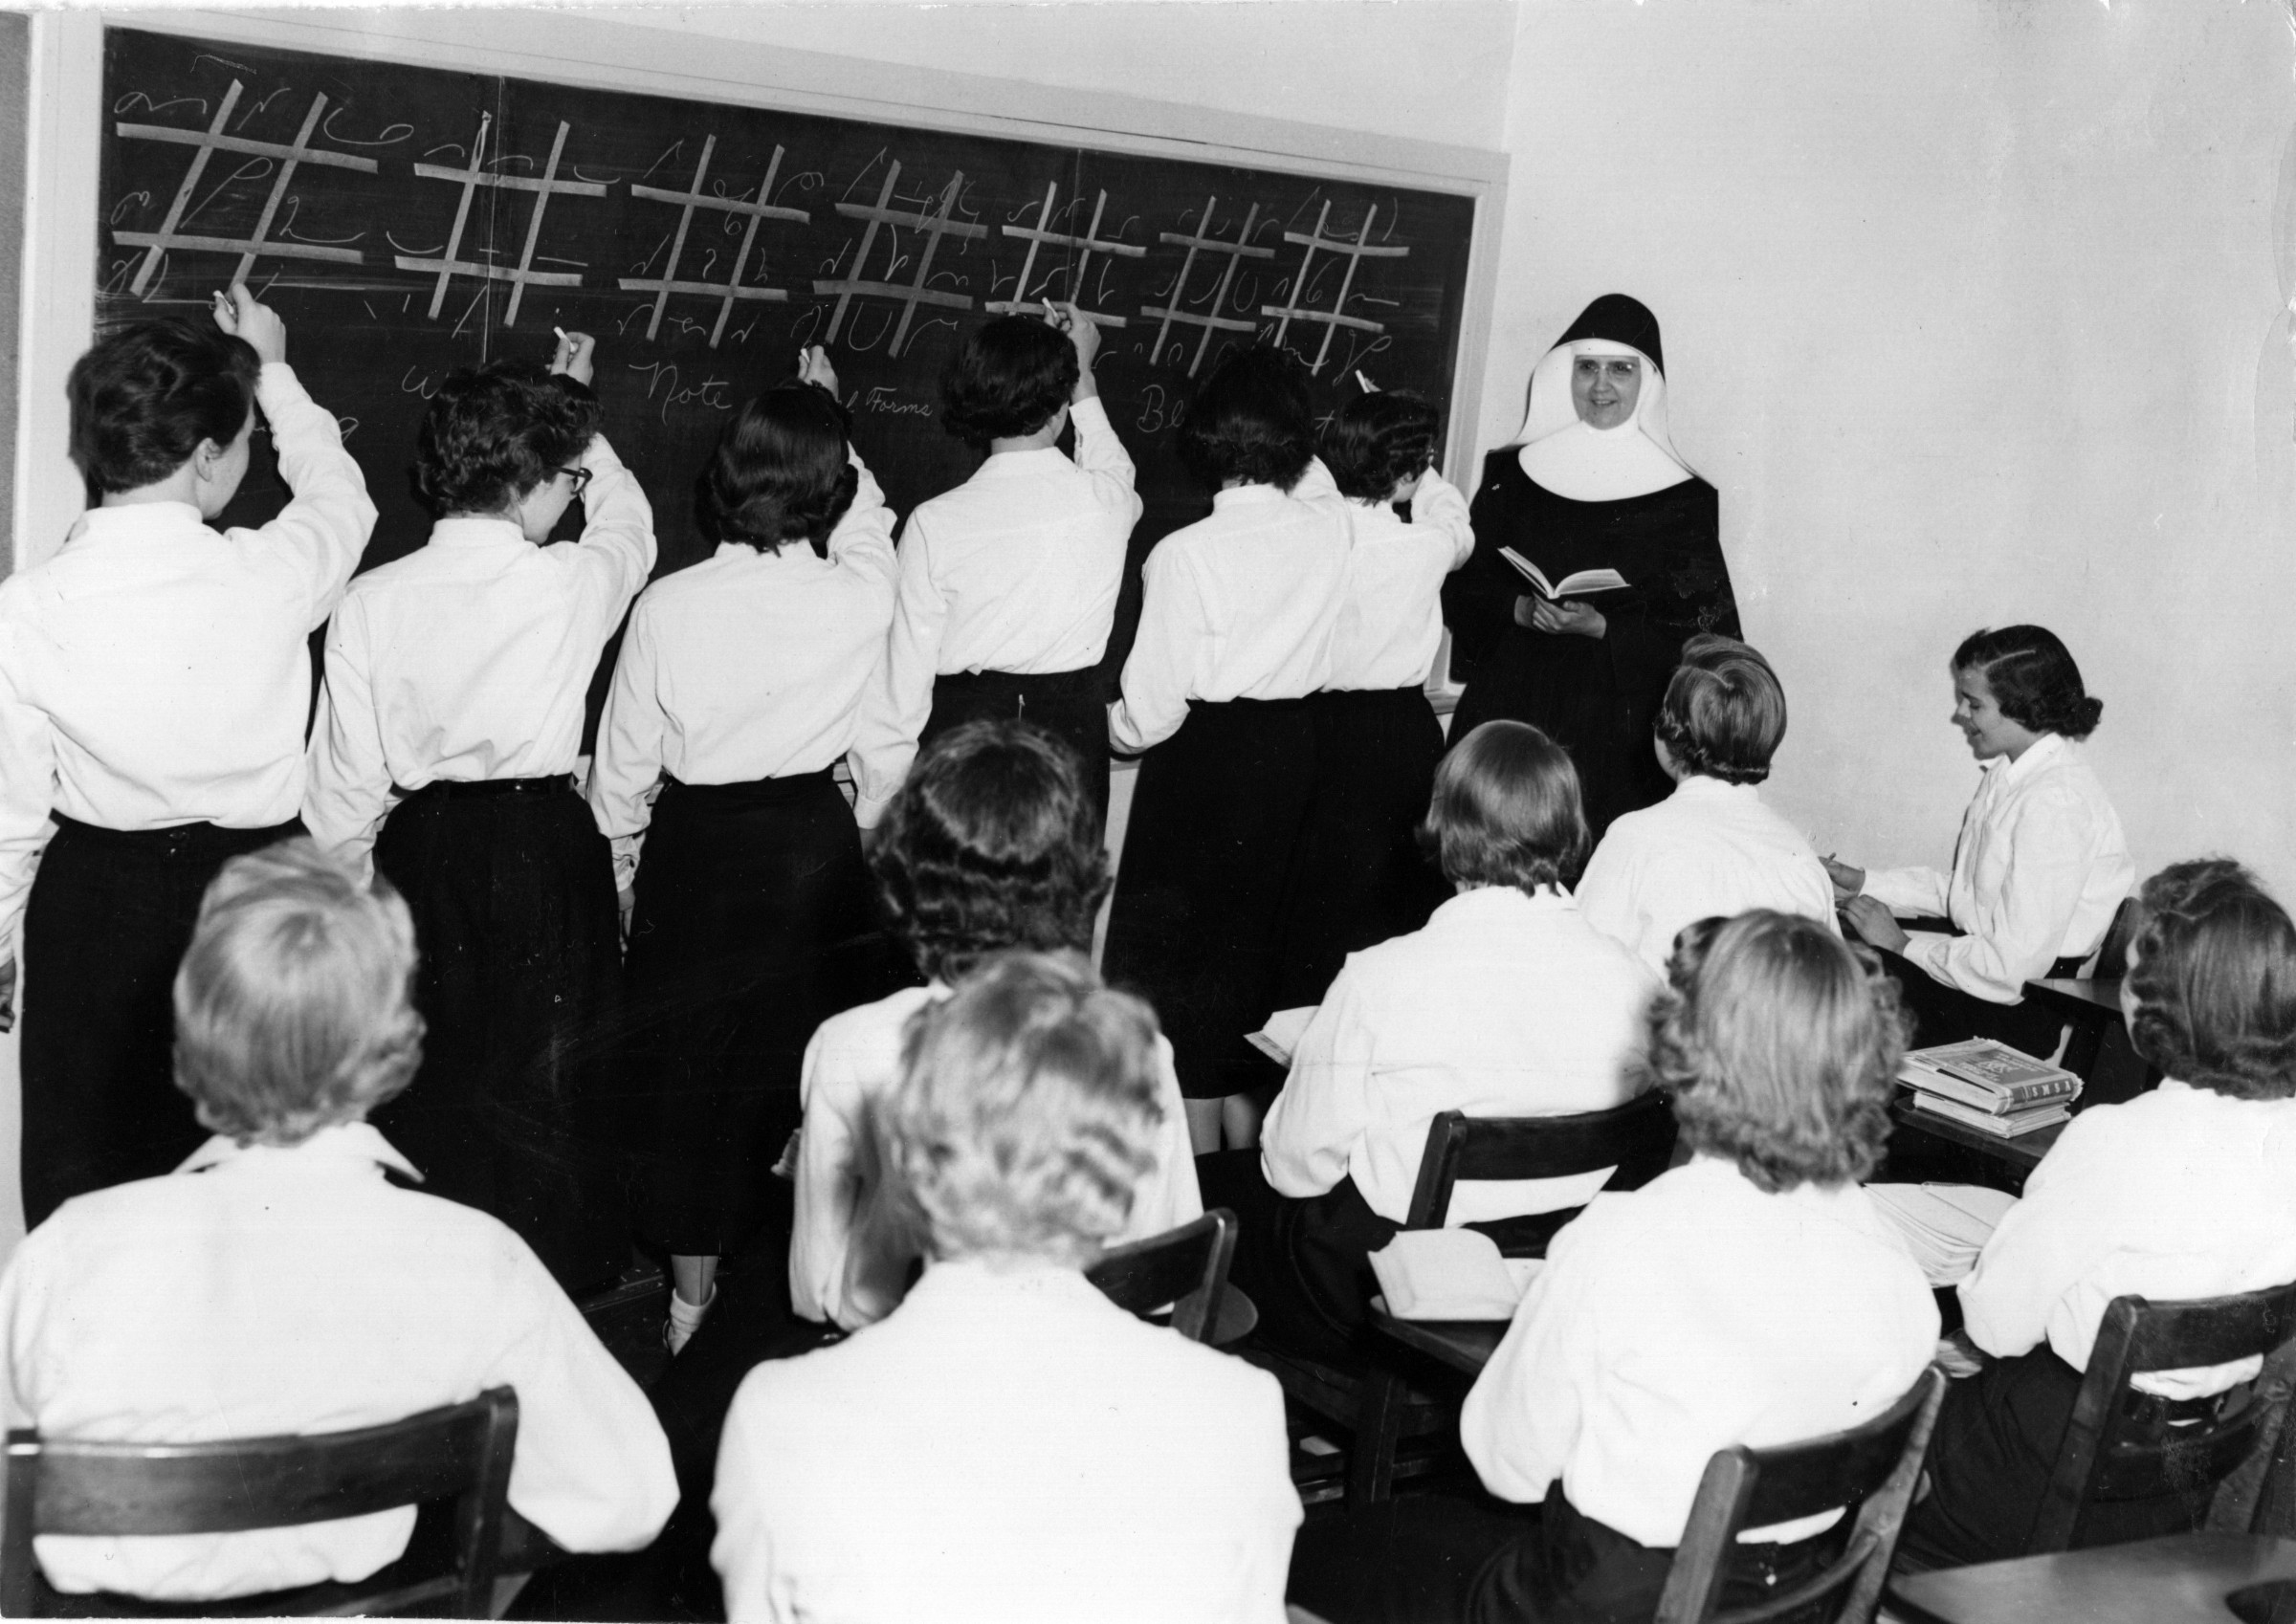 Shorthand class in the 1950s at St. Mary's Springs Academy.